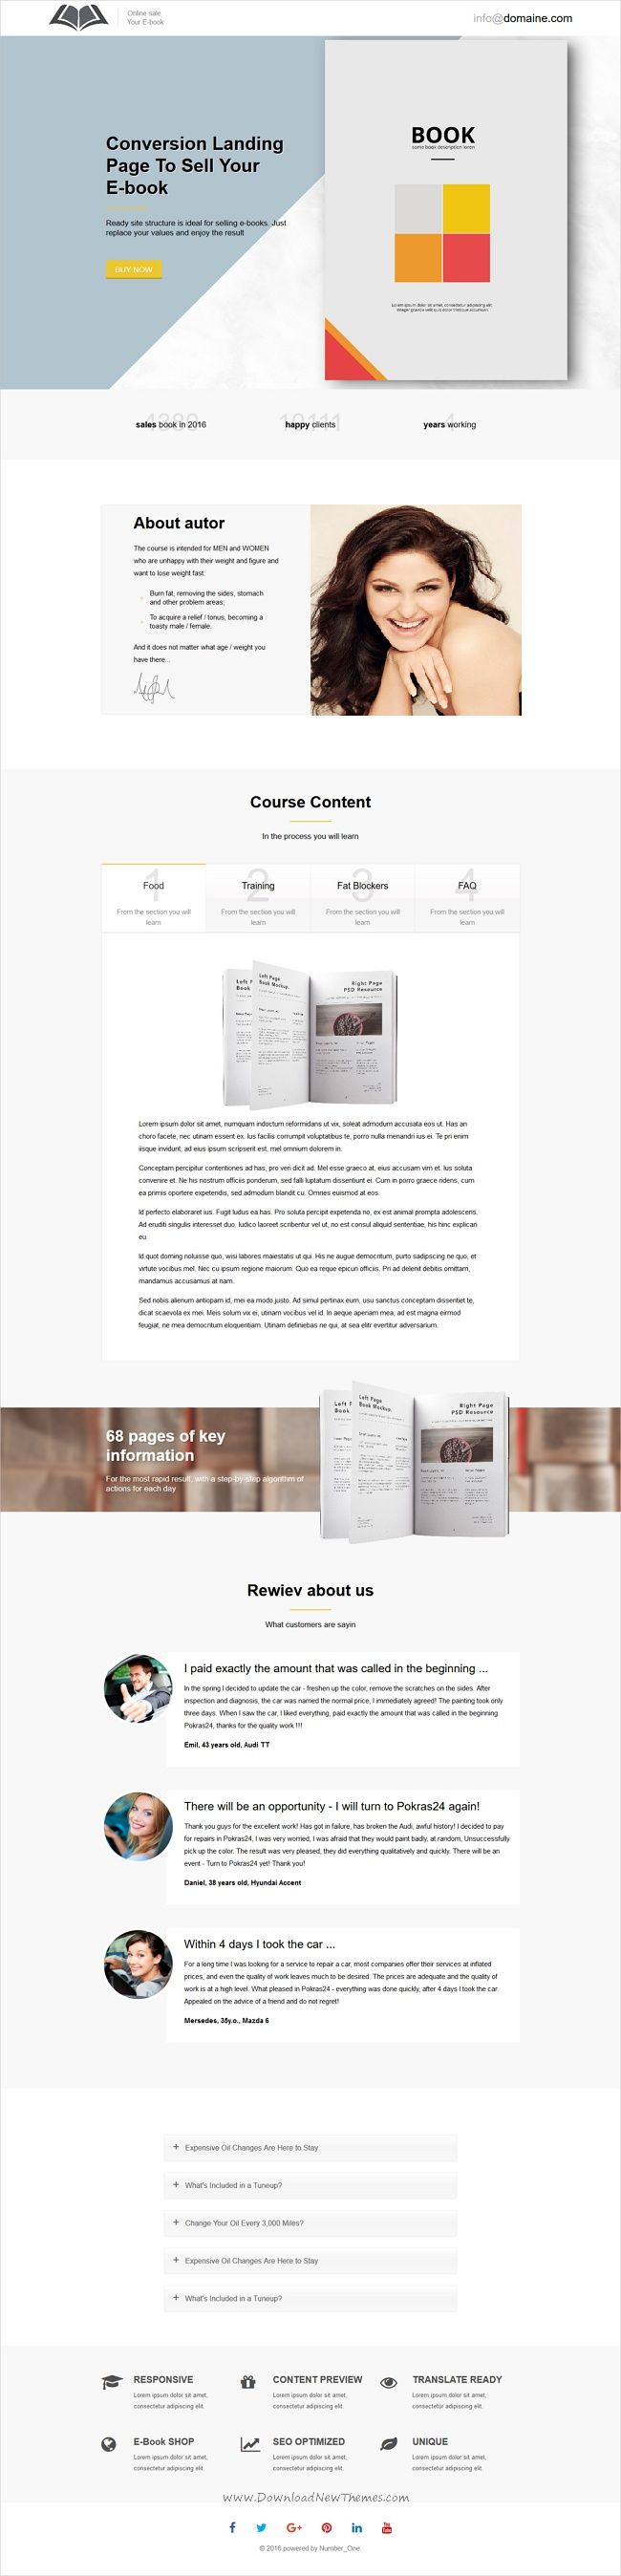 E- Marketing HTML Landing Page Templates | Book authors and Template